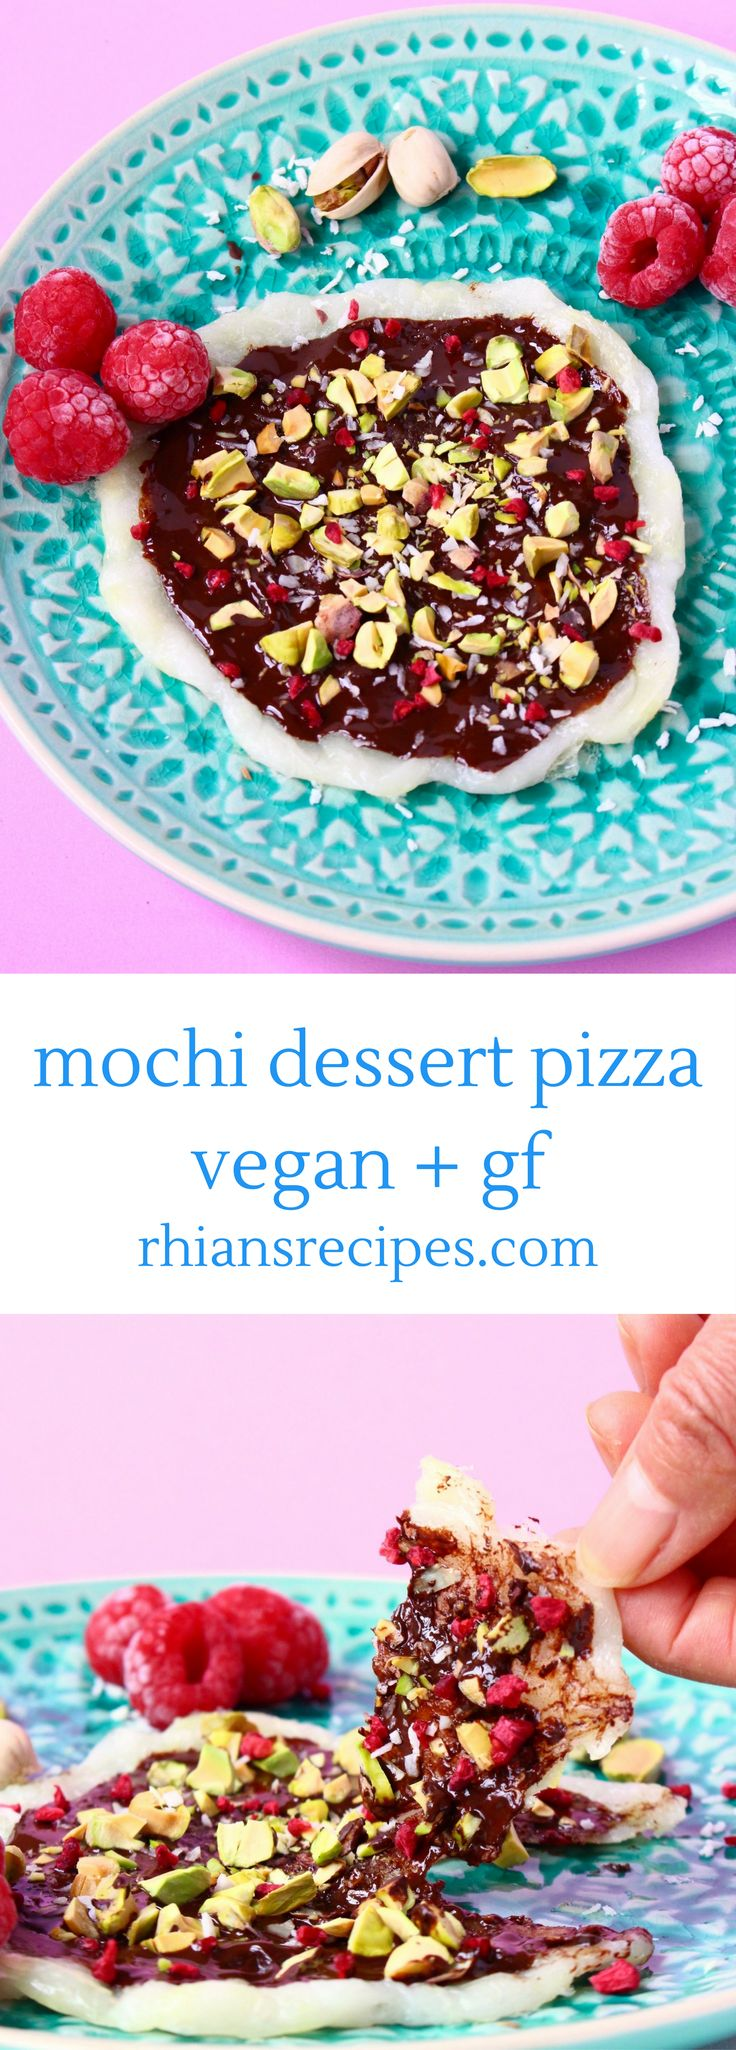 This Mochi Dessert Pizza is SO delicious, super easy to make and happens to be vegan and gluten-free too!